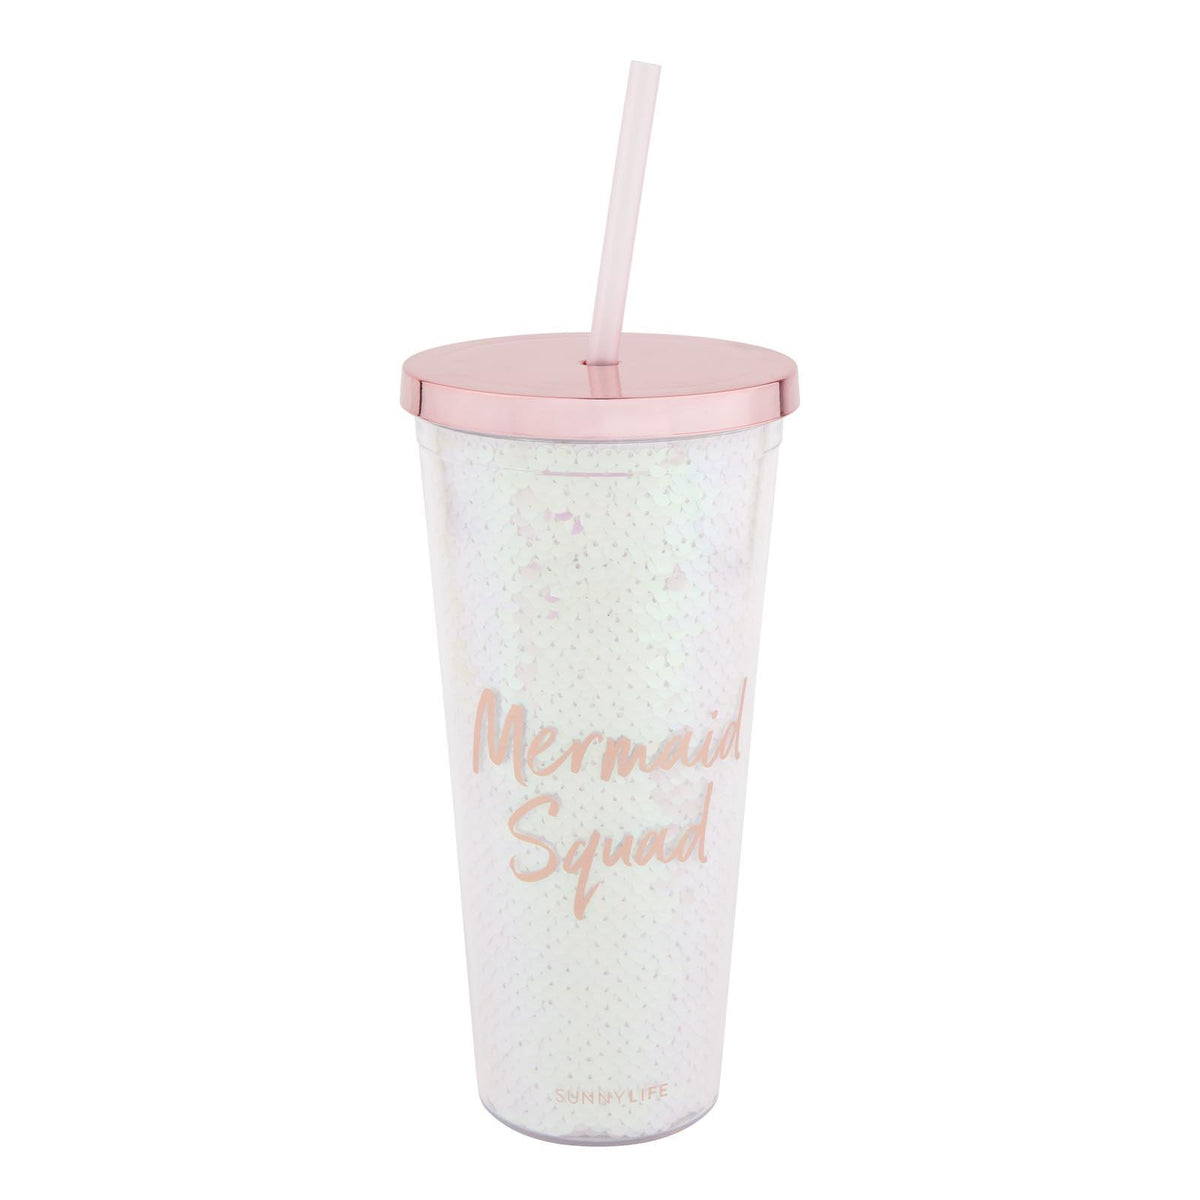 Sunnylife | Tumbler | Mermaid Iridescent